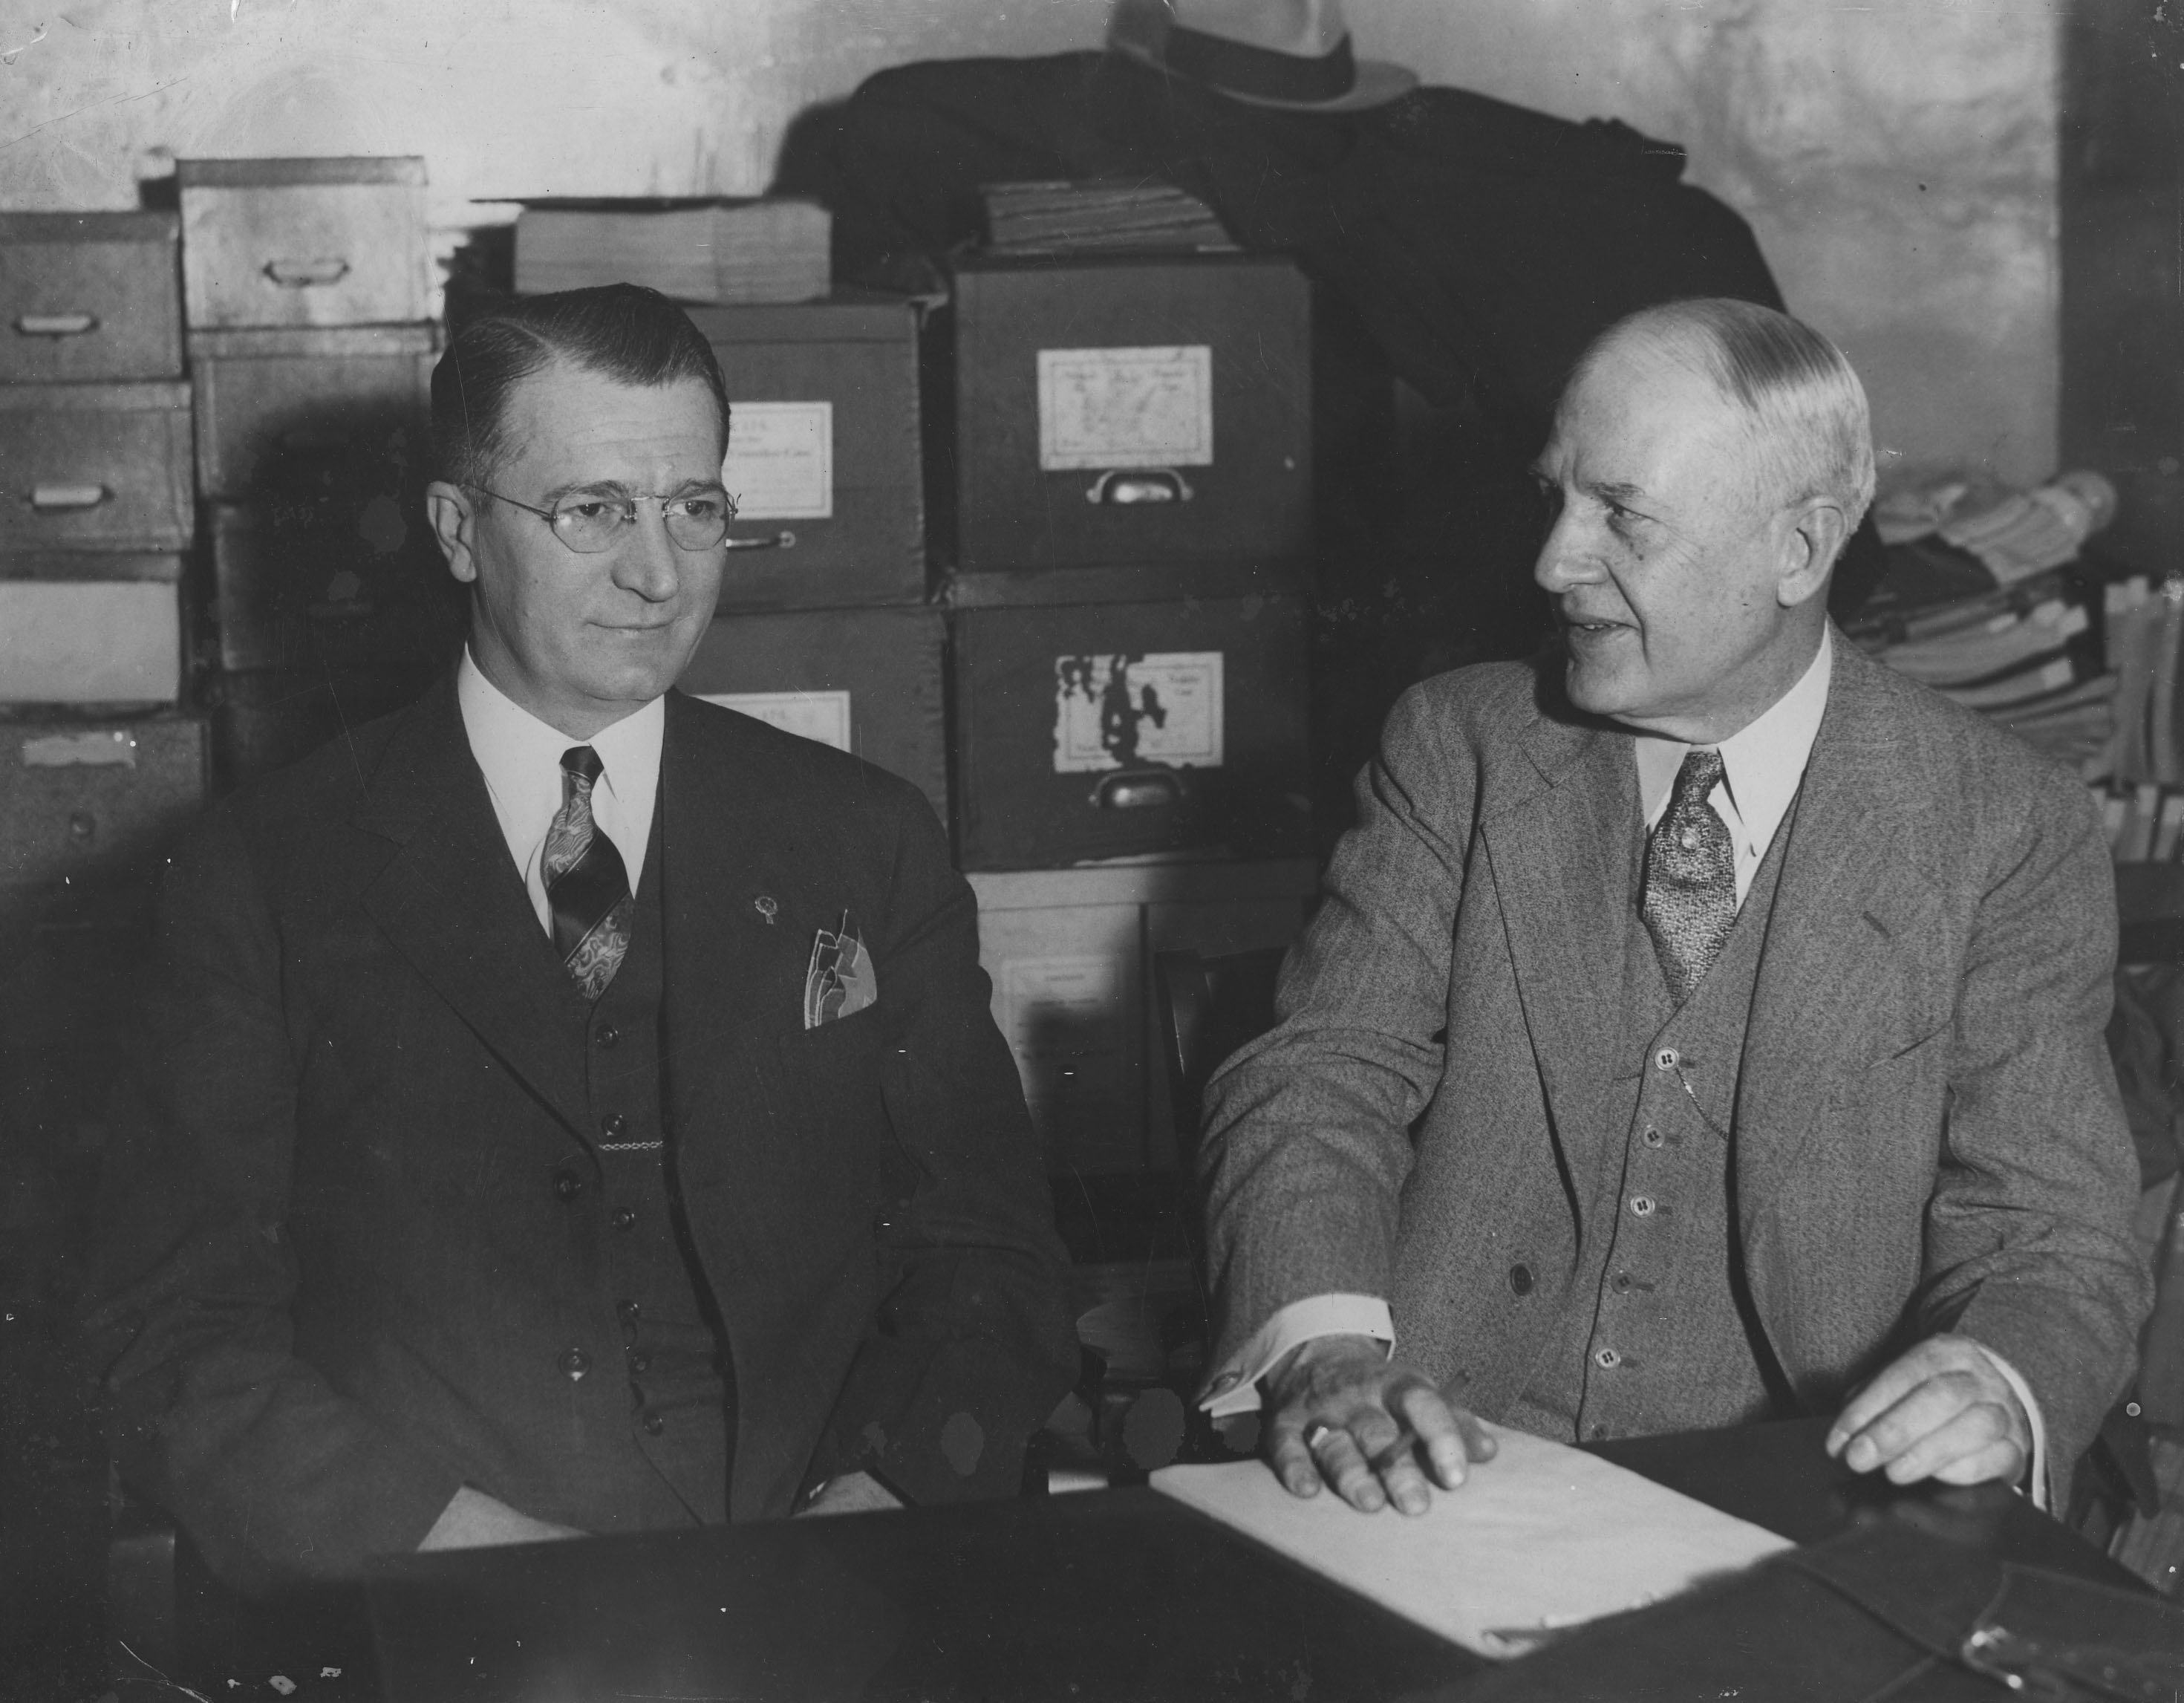 Historic photo of two men seated